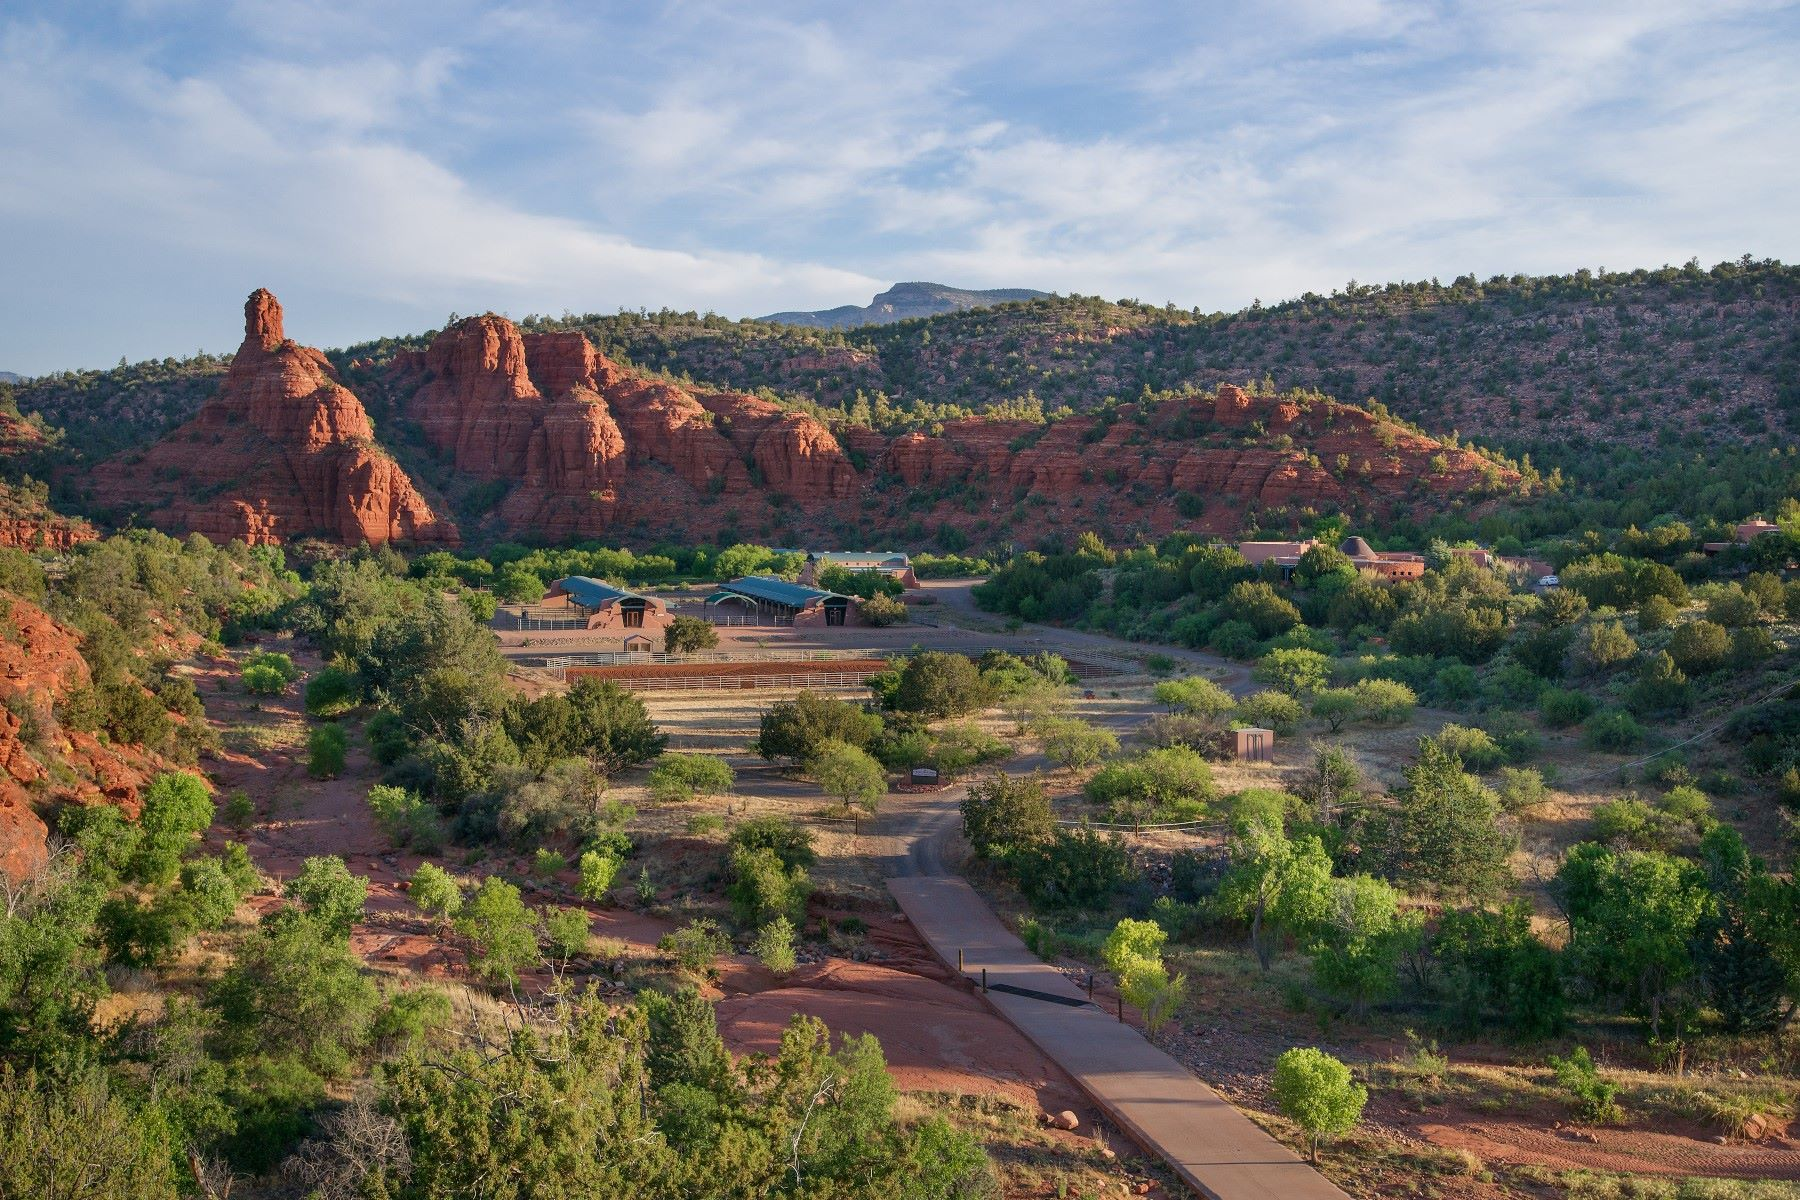 土地 為 出售 在 One-of-a-kind property - largest undeveloped privately owned parcels in Sedona 6625 W State Route 89A -- 0 Sedona, 亞利桑那州, 86336 美國